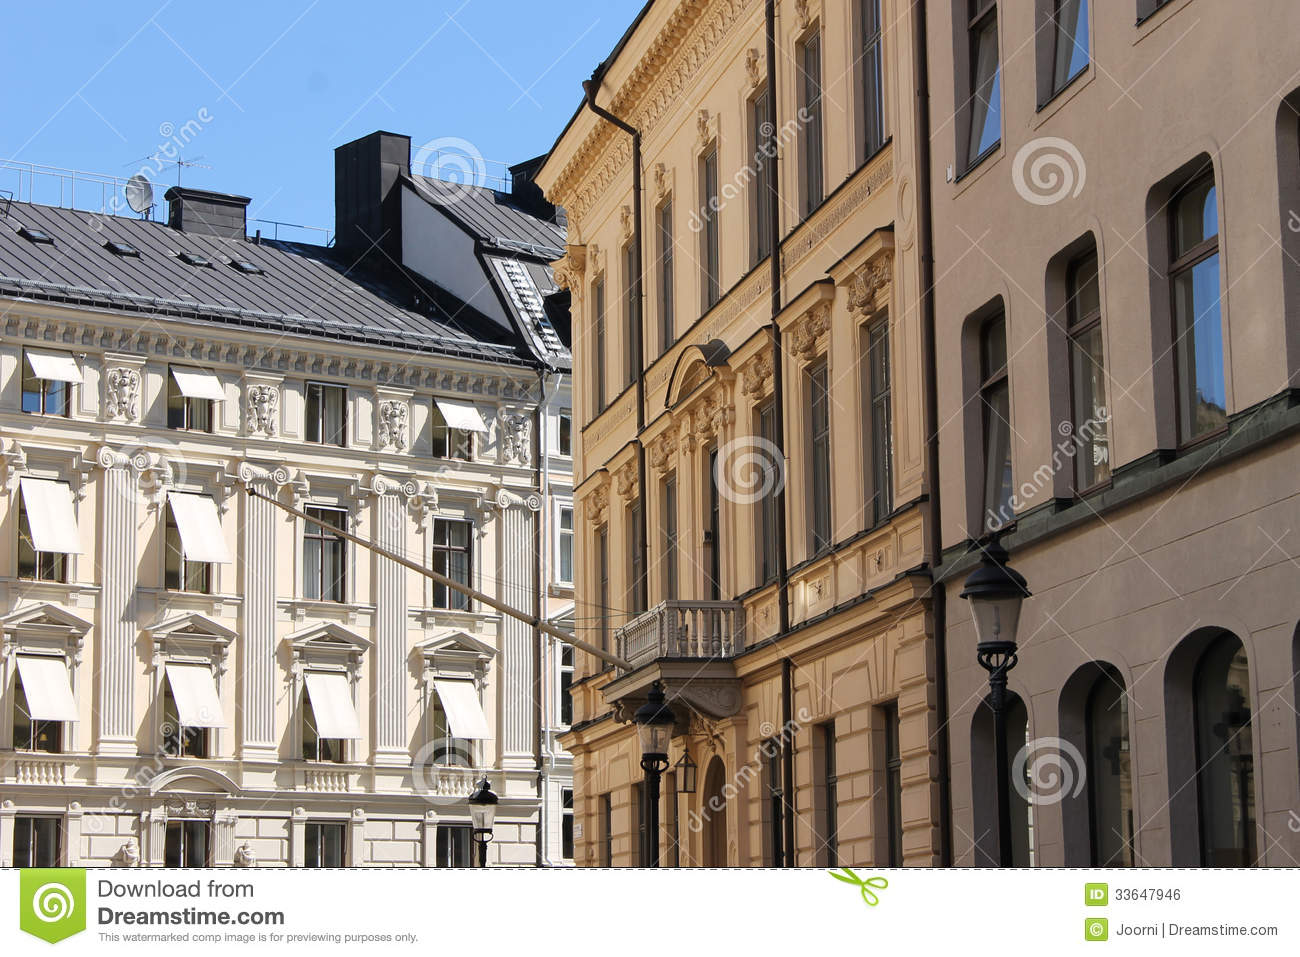 Old Apartment Buildings In City Royalty Free Stock Image - Image ...